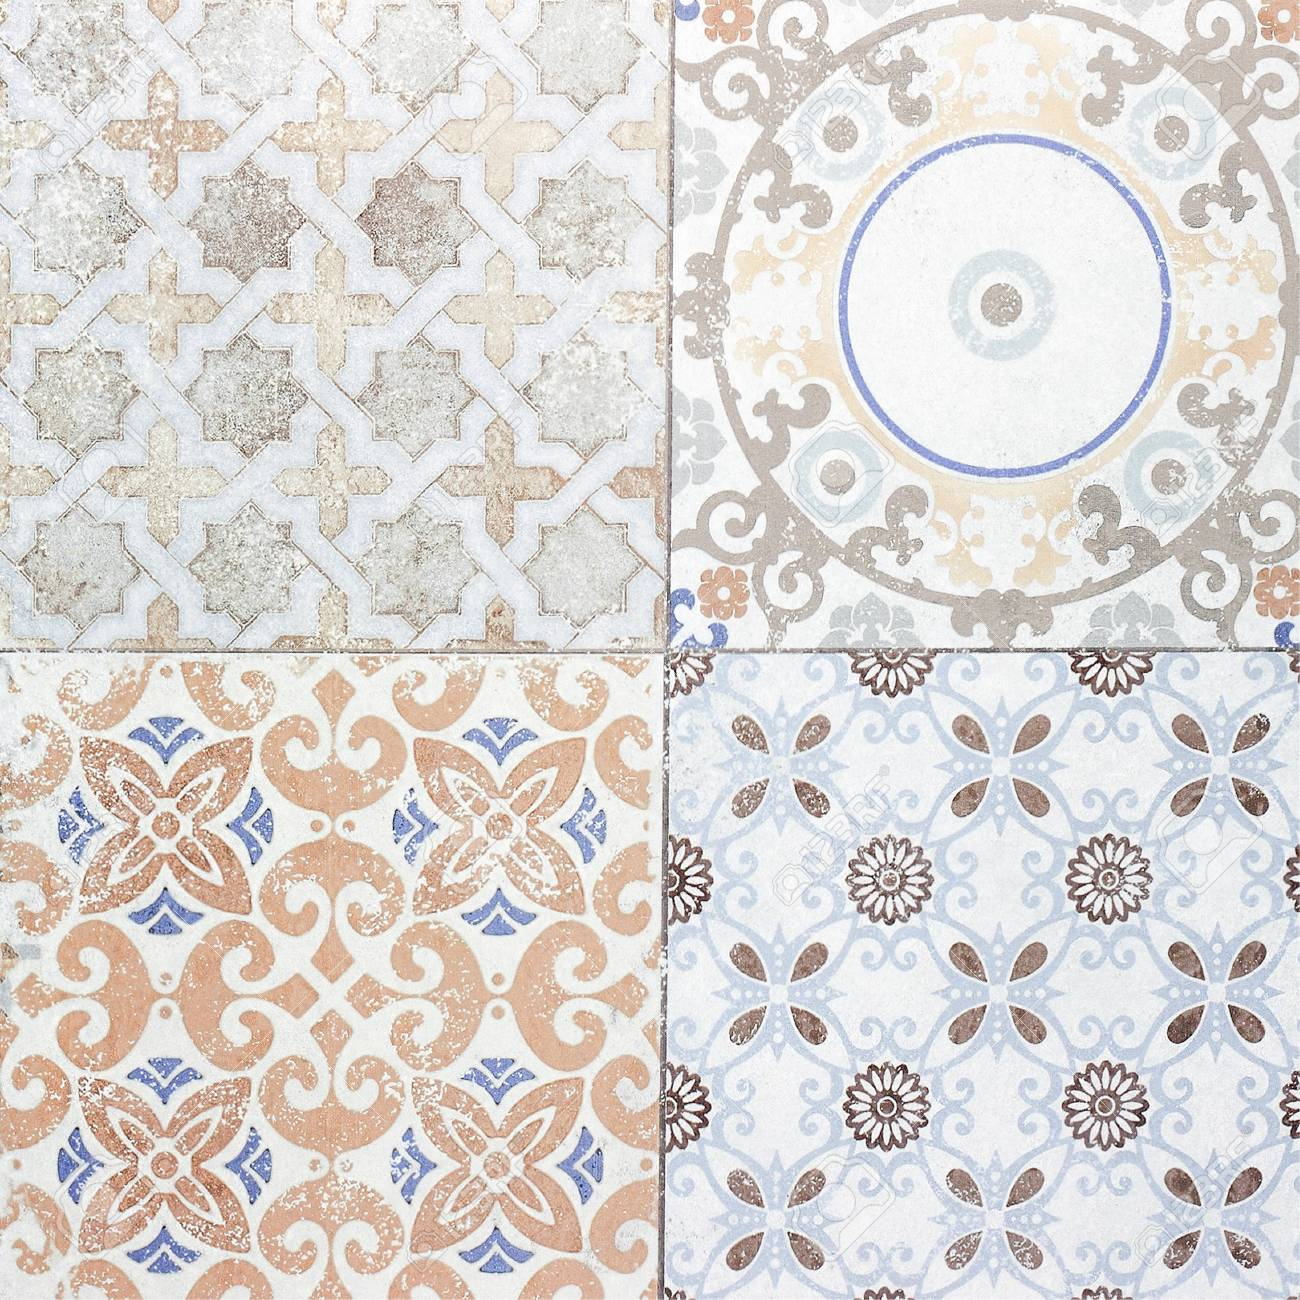 Beautiful old ceramic tile patterns in the park public stock photo 80062482